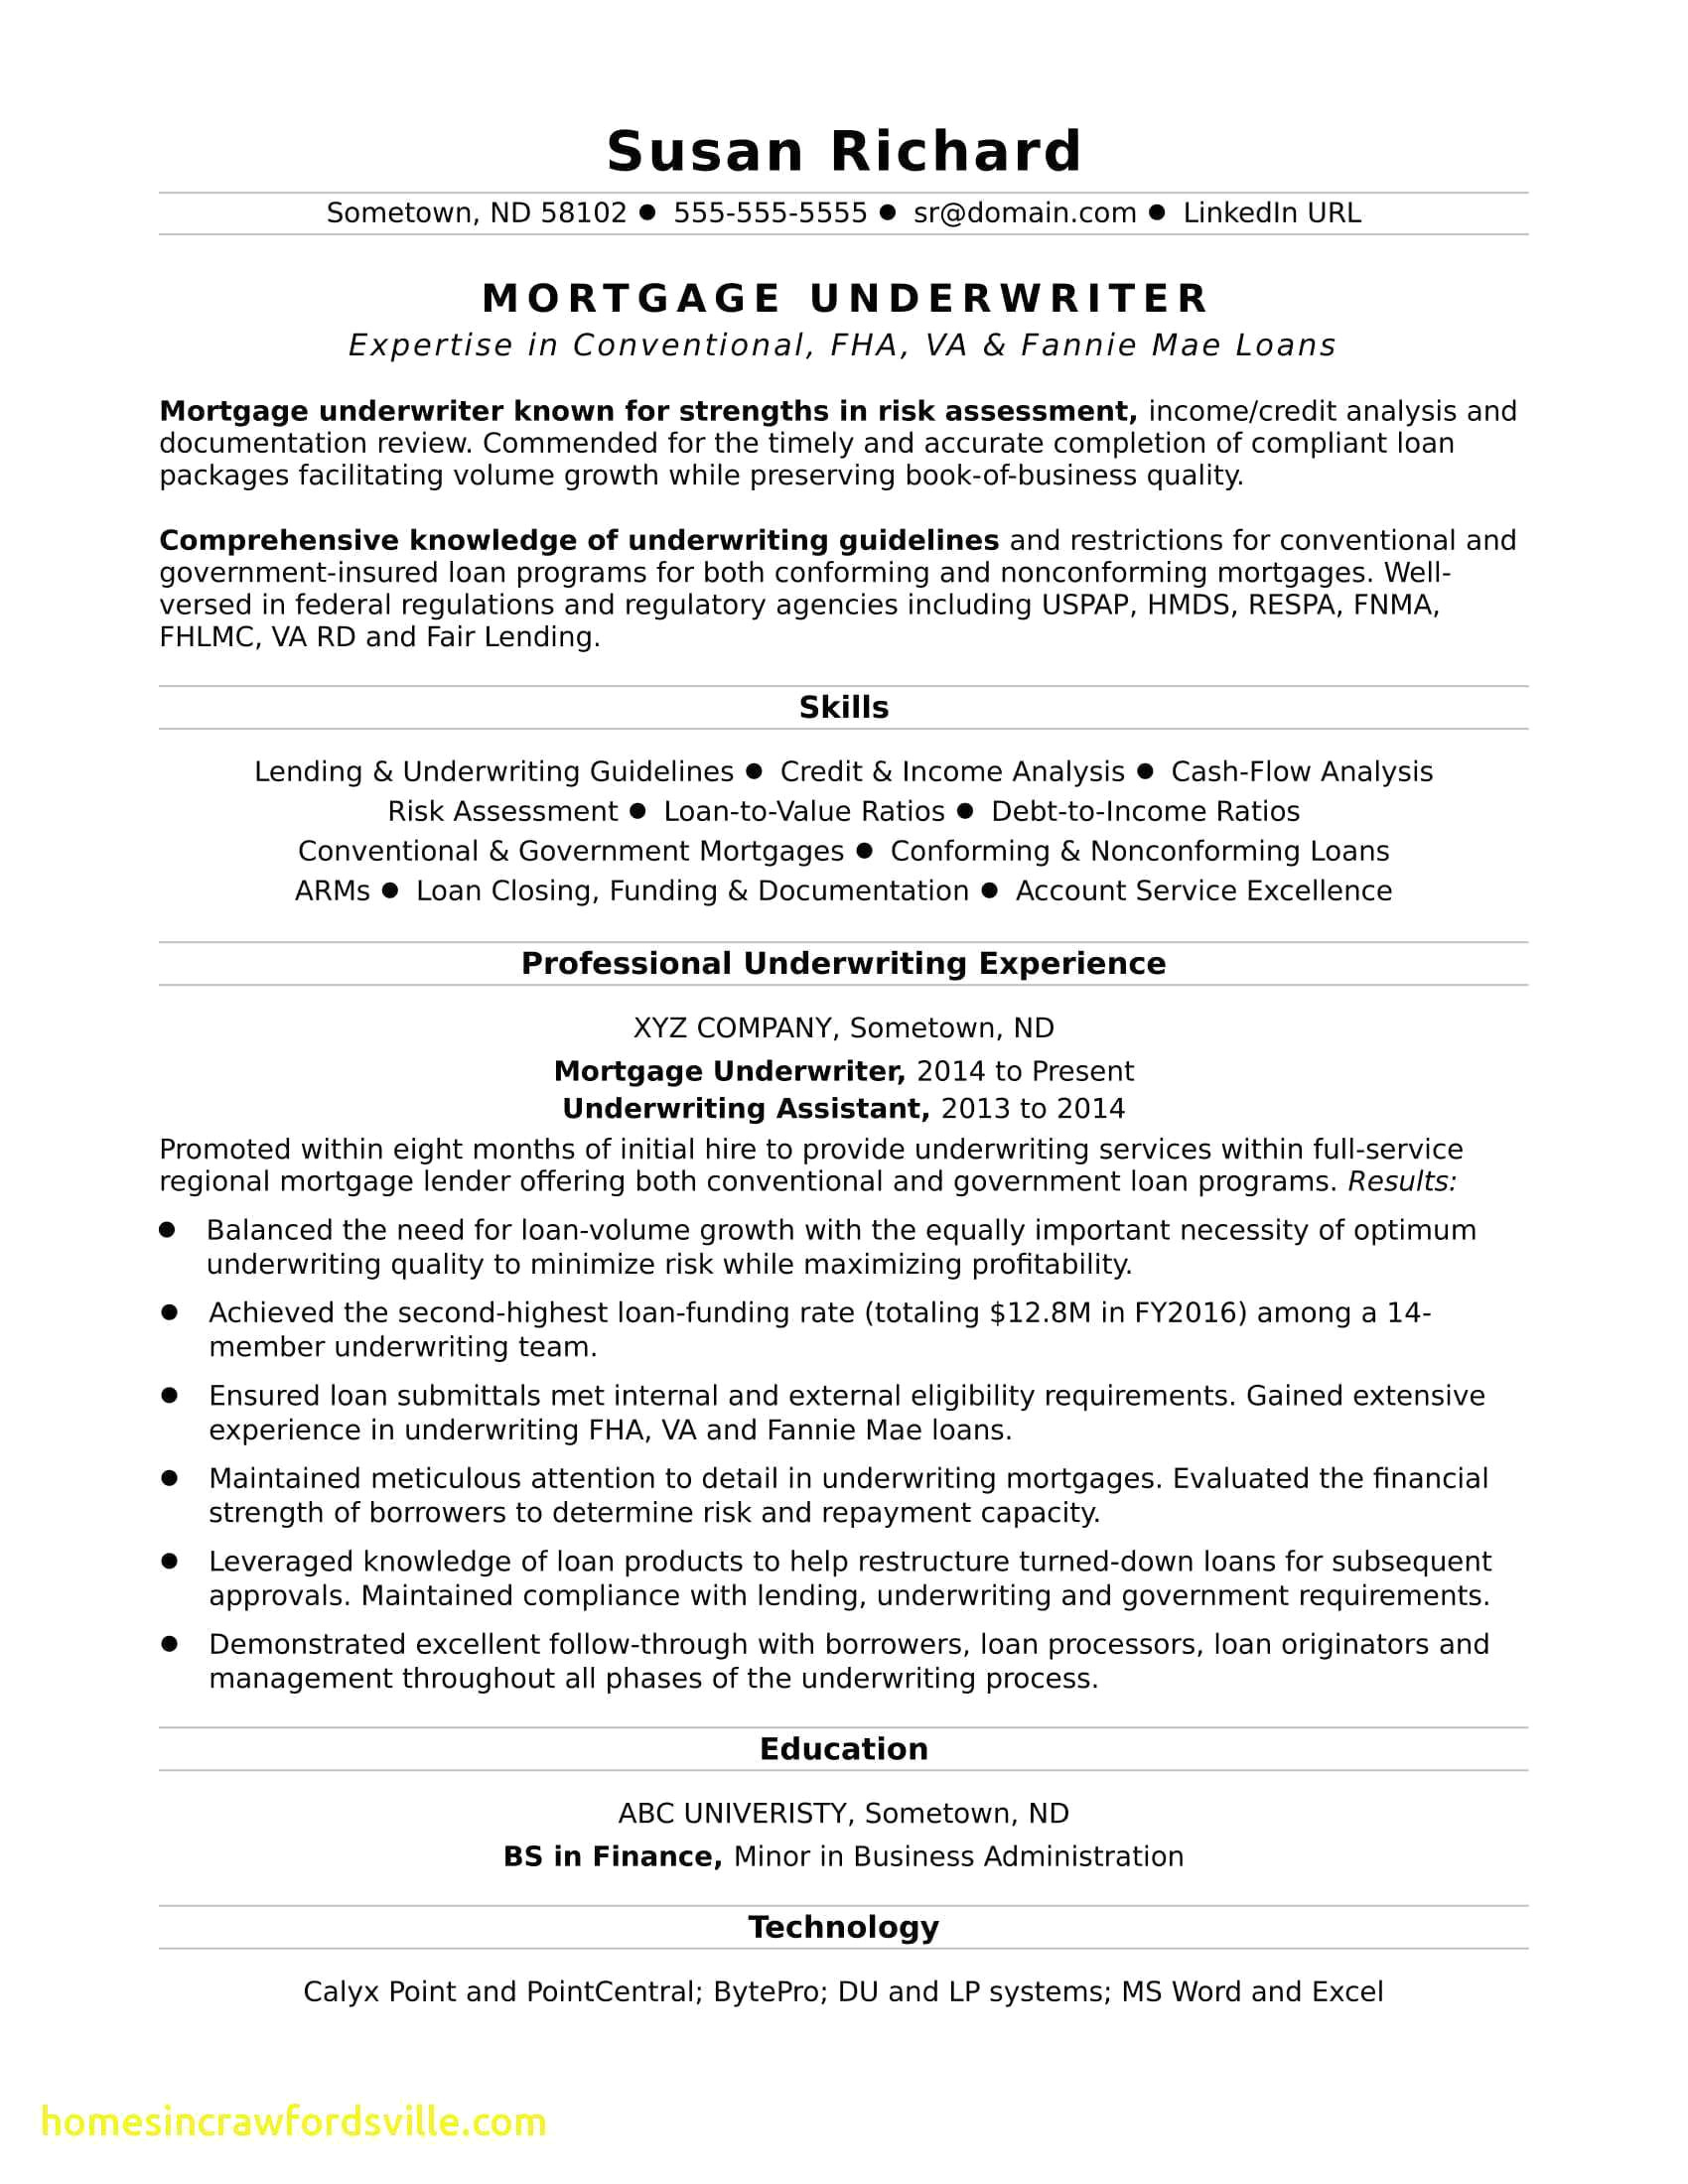 Systems Administrator Resume Template - 48 Design the Best Resume format